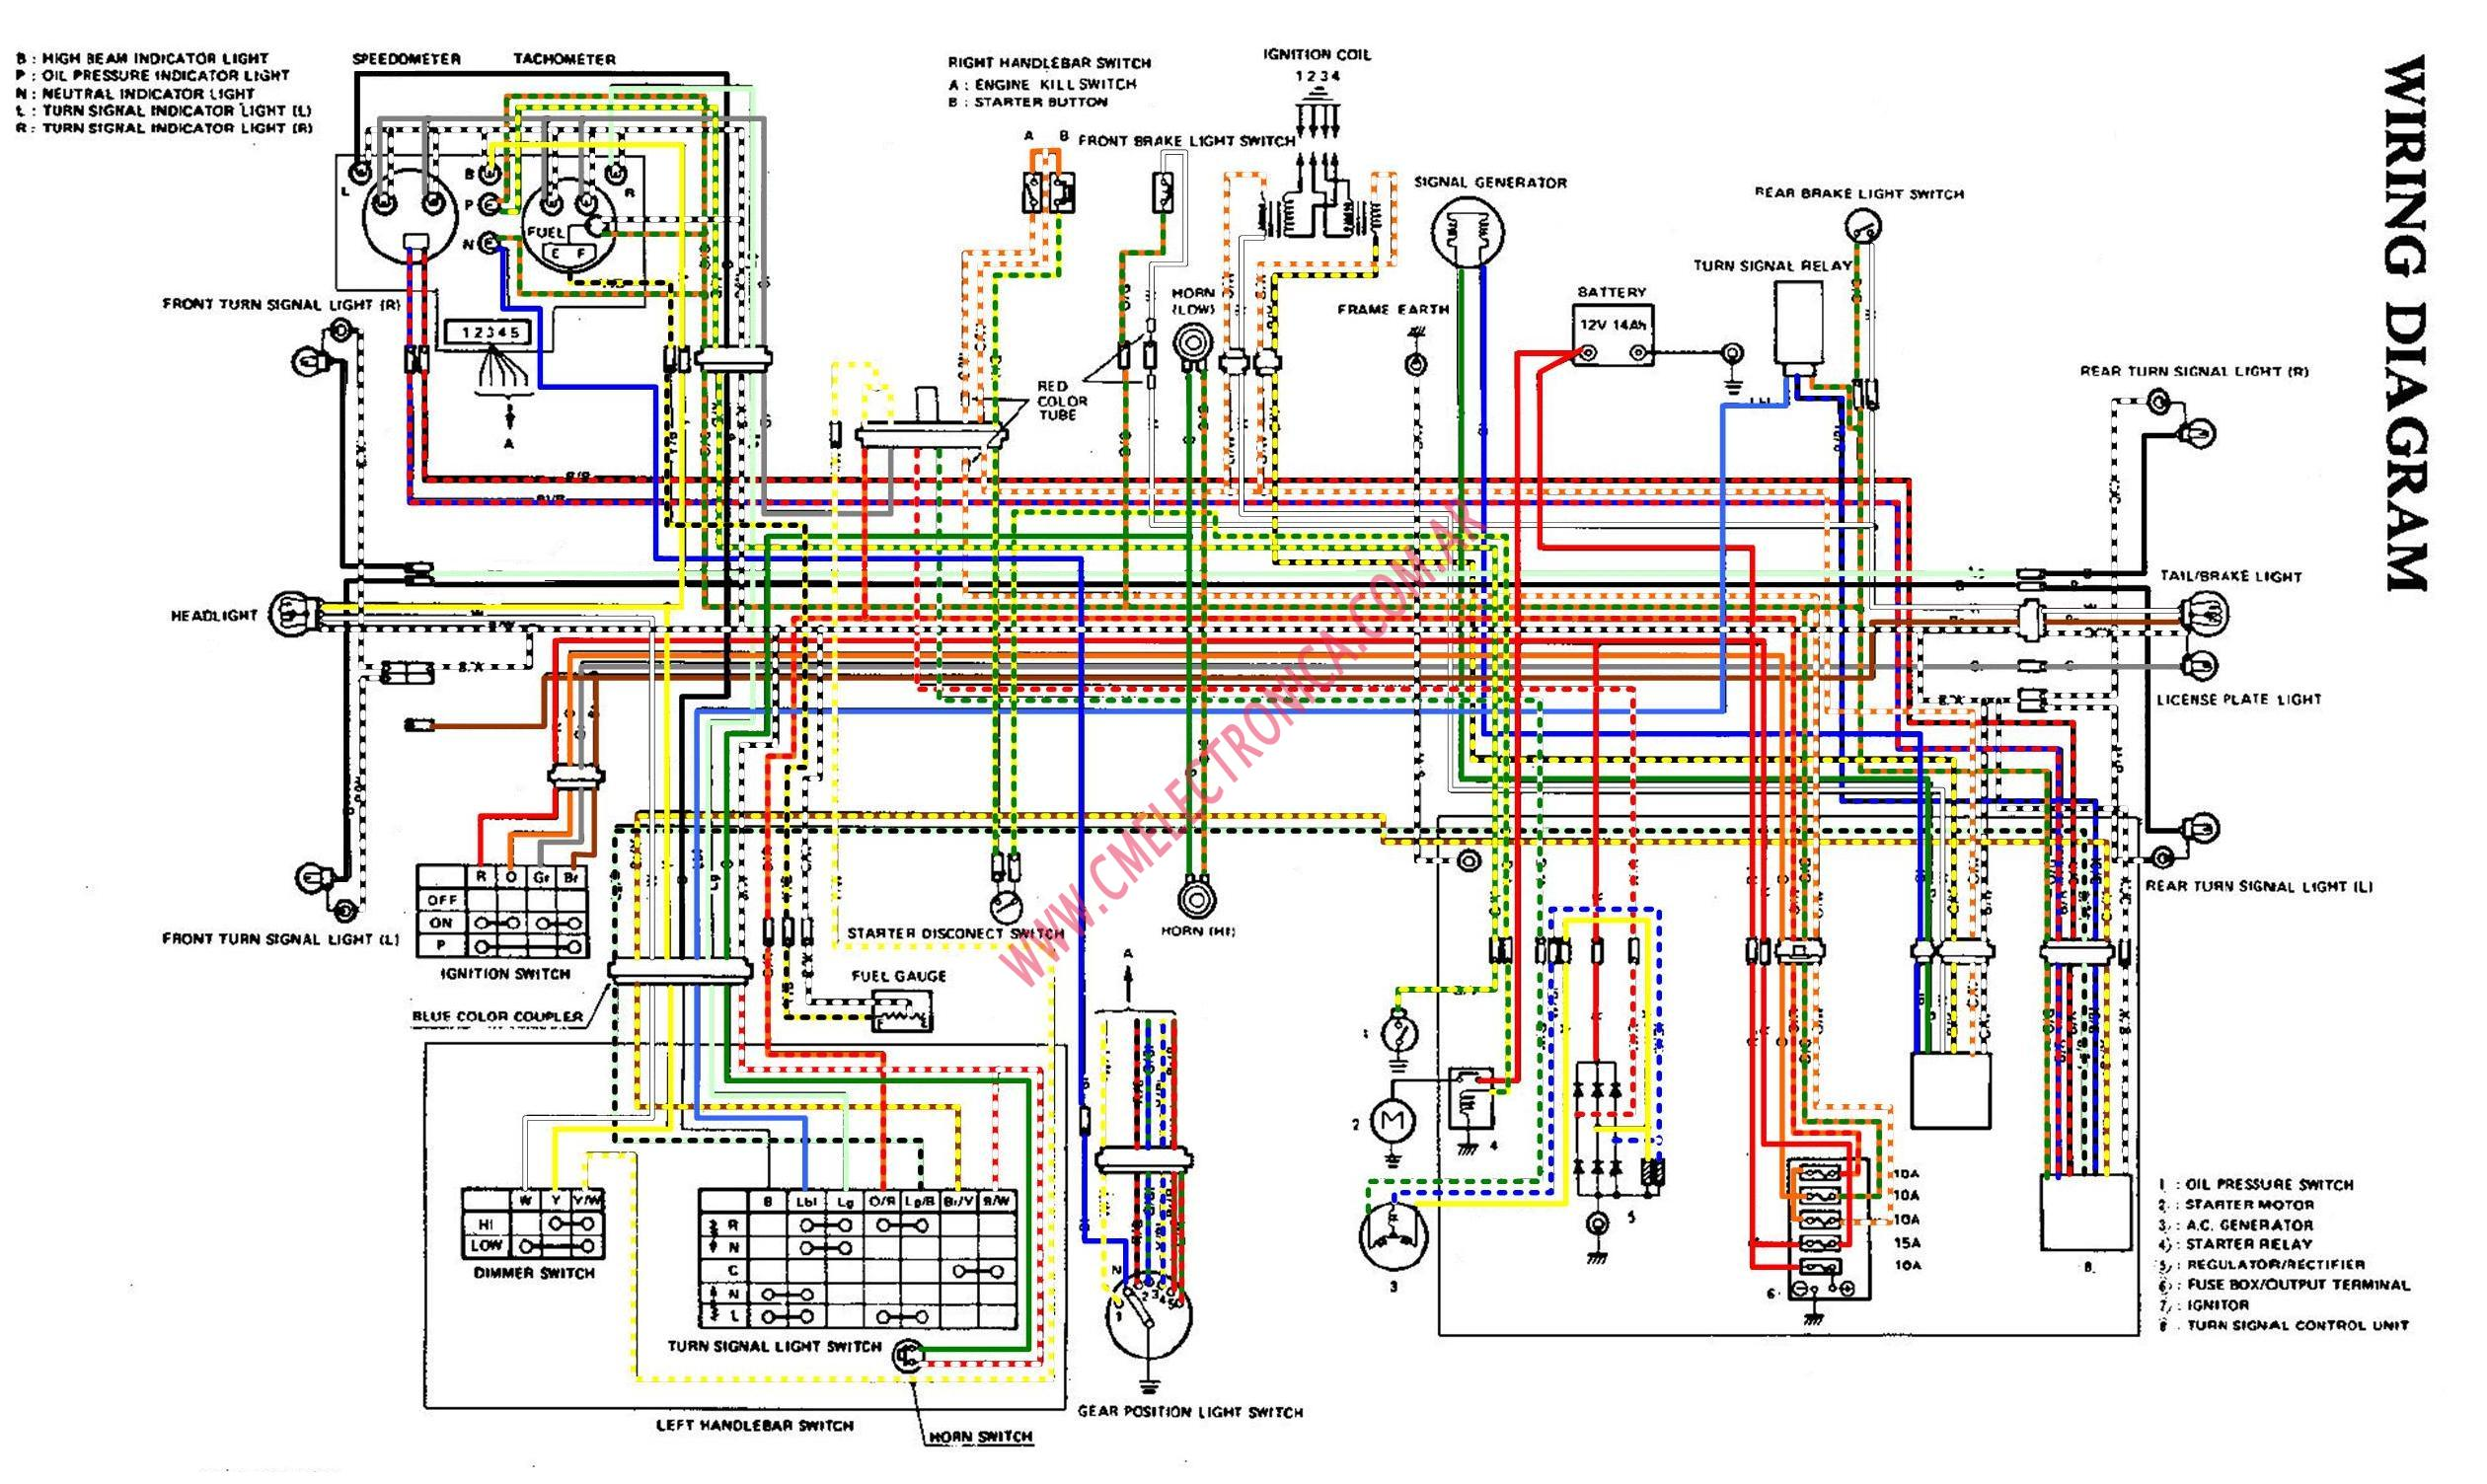 Yamaha Road Star Wiring Diagram Content Resource Of R1 1999 Suzuki Gsxr 600 1993 The 2000